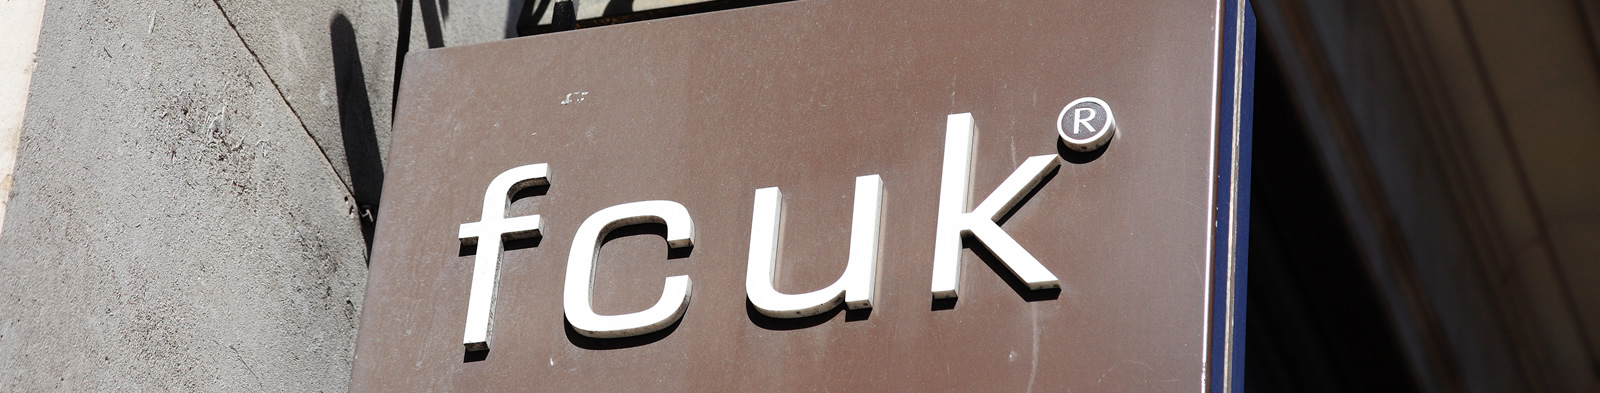 French Connection logo on shop sign